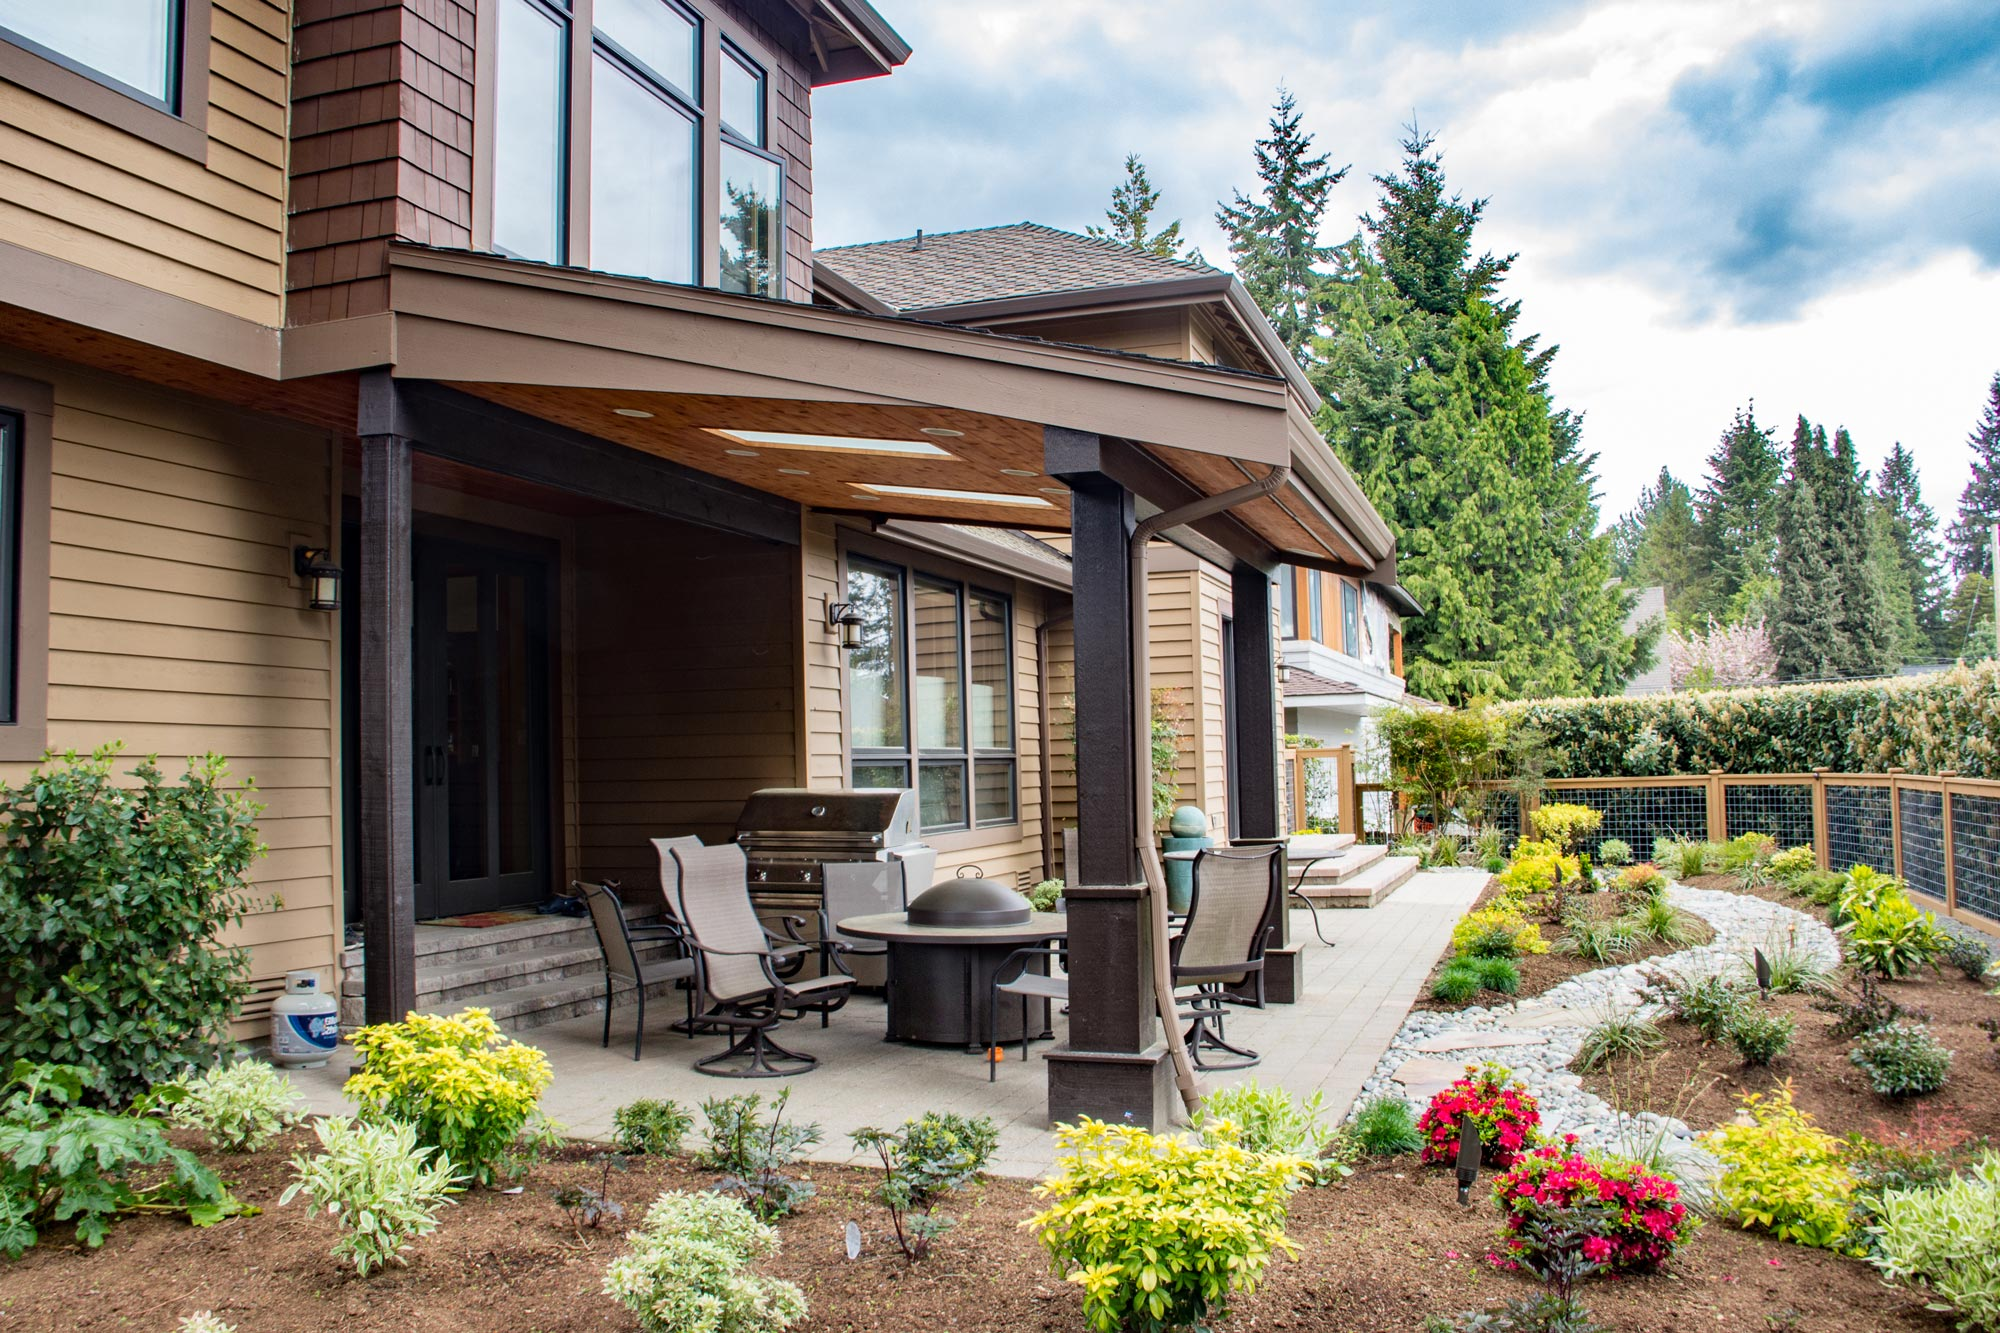 clyde hill outdoor rooms urban oasis design u0026 construction llc